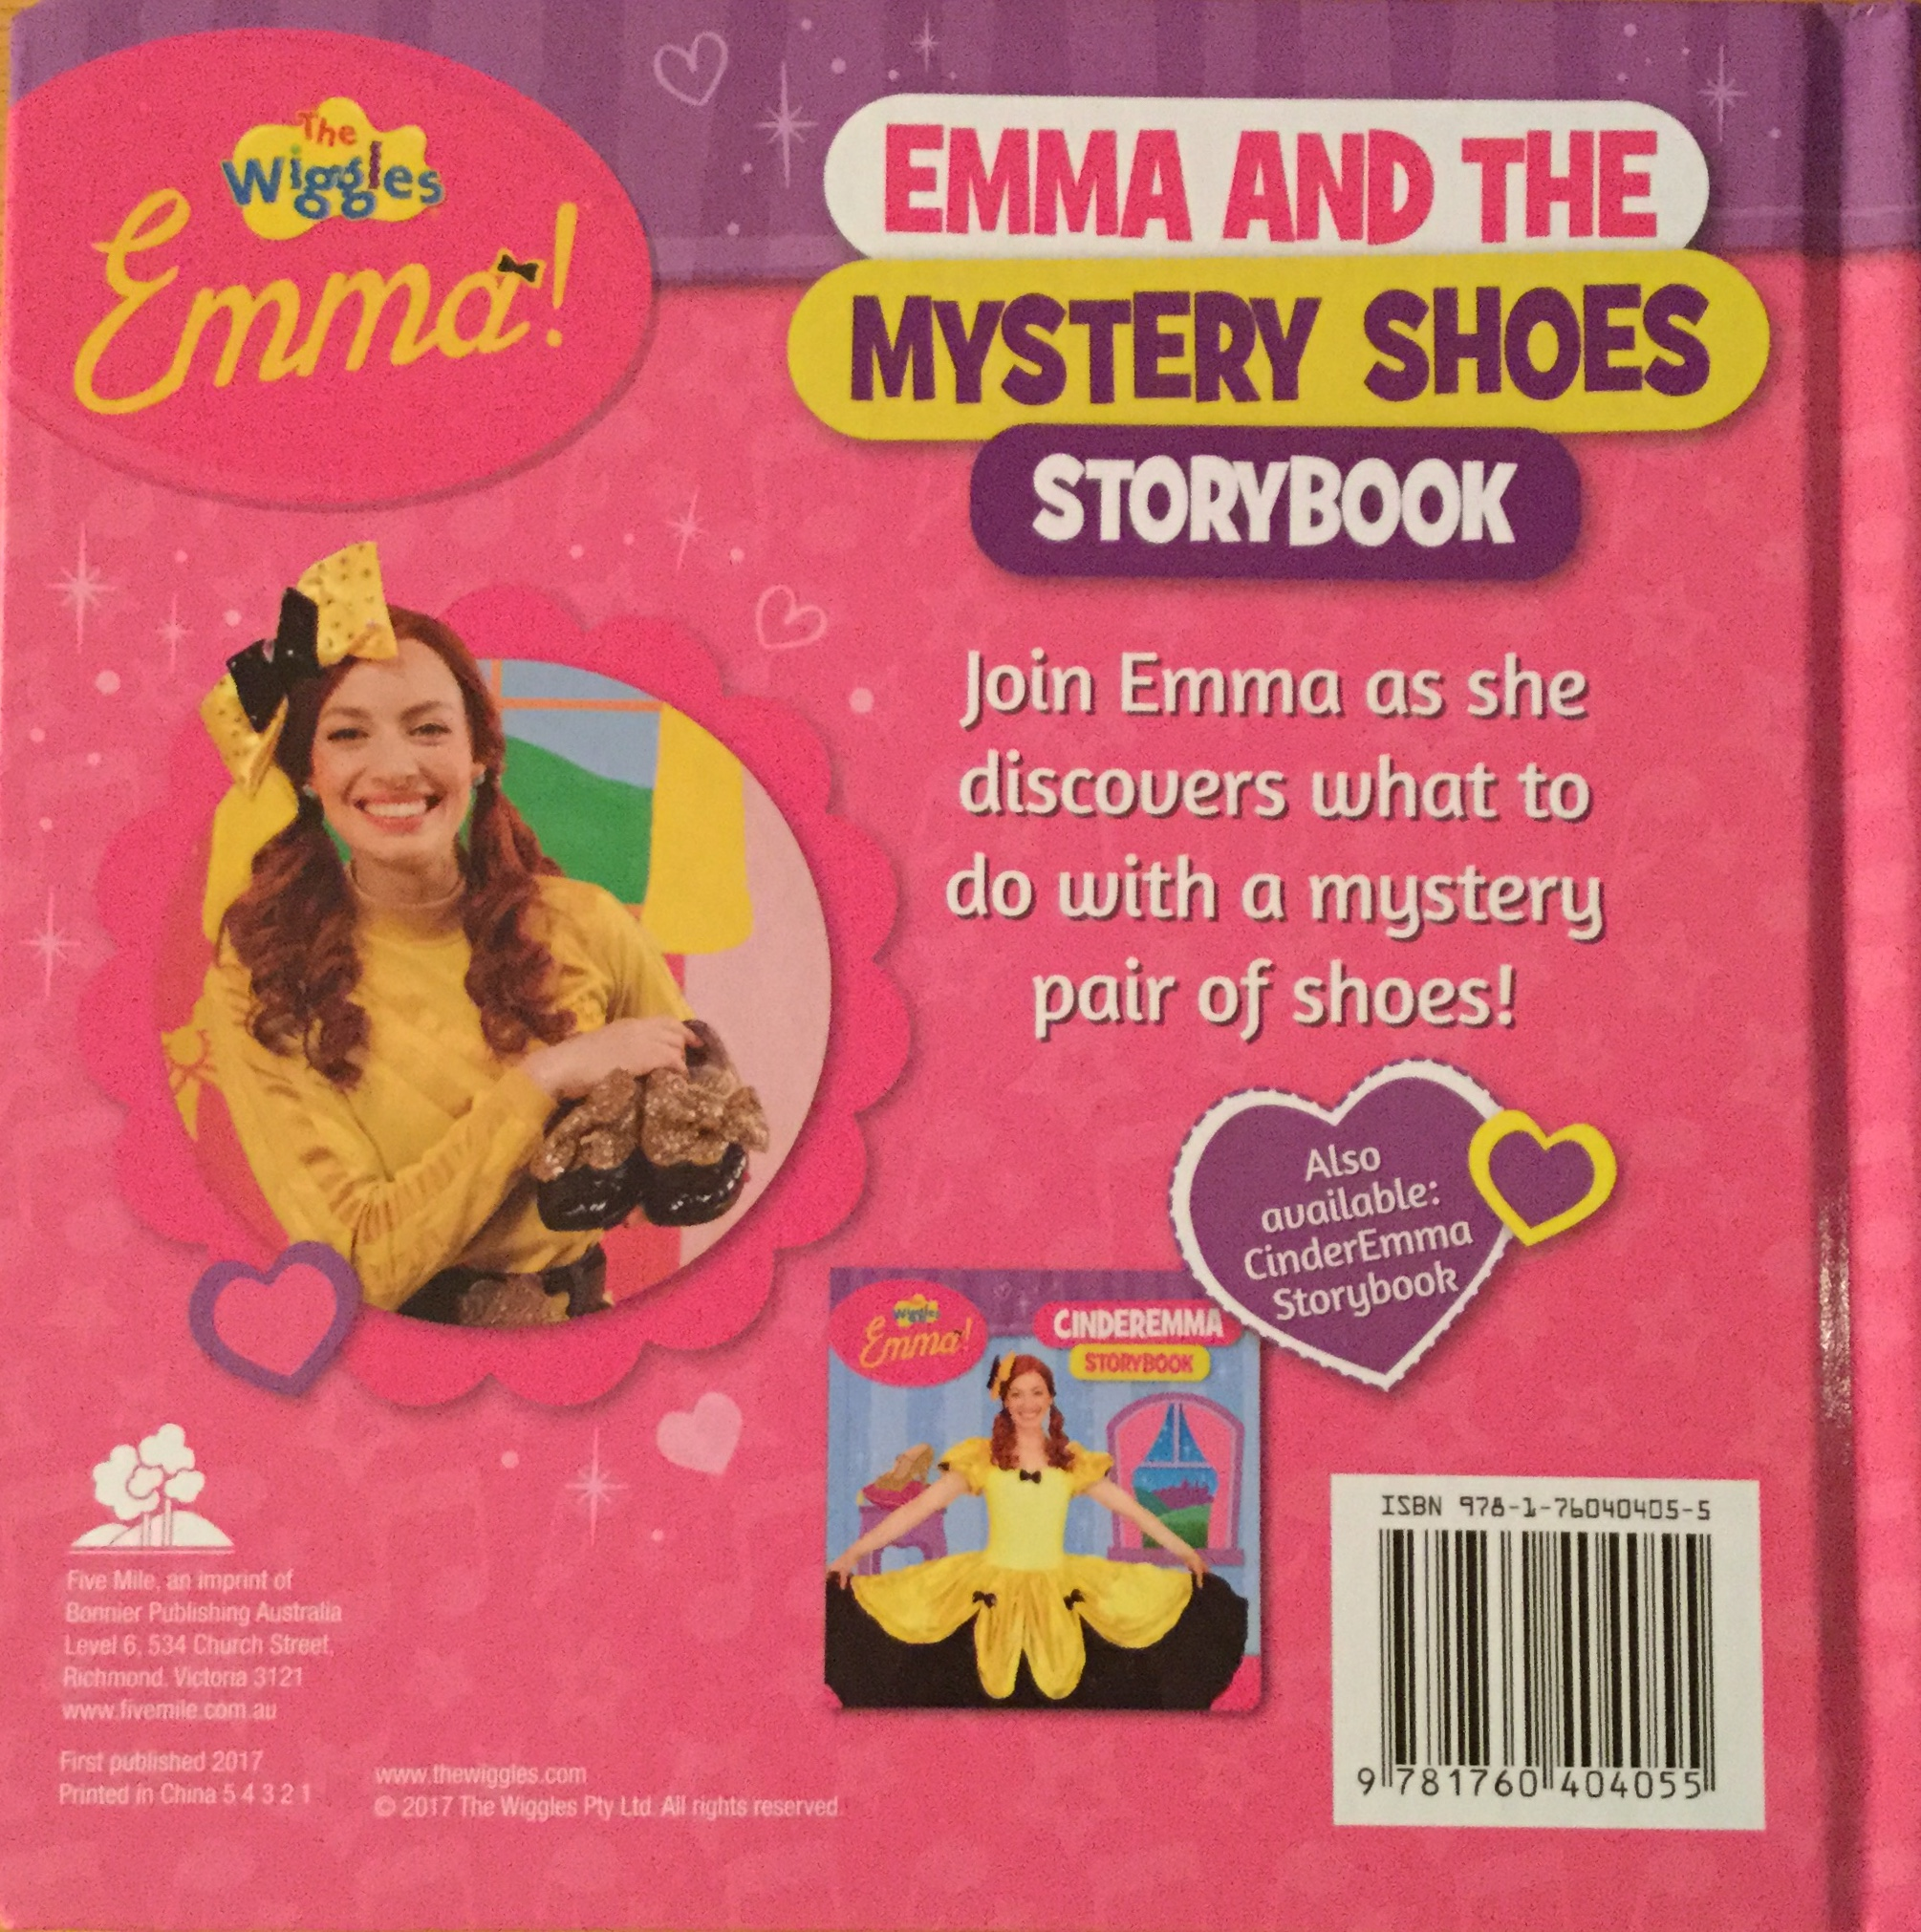 Emma and the Mystery Shoes Storybook